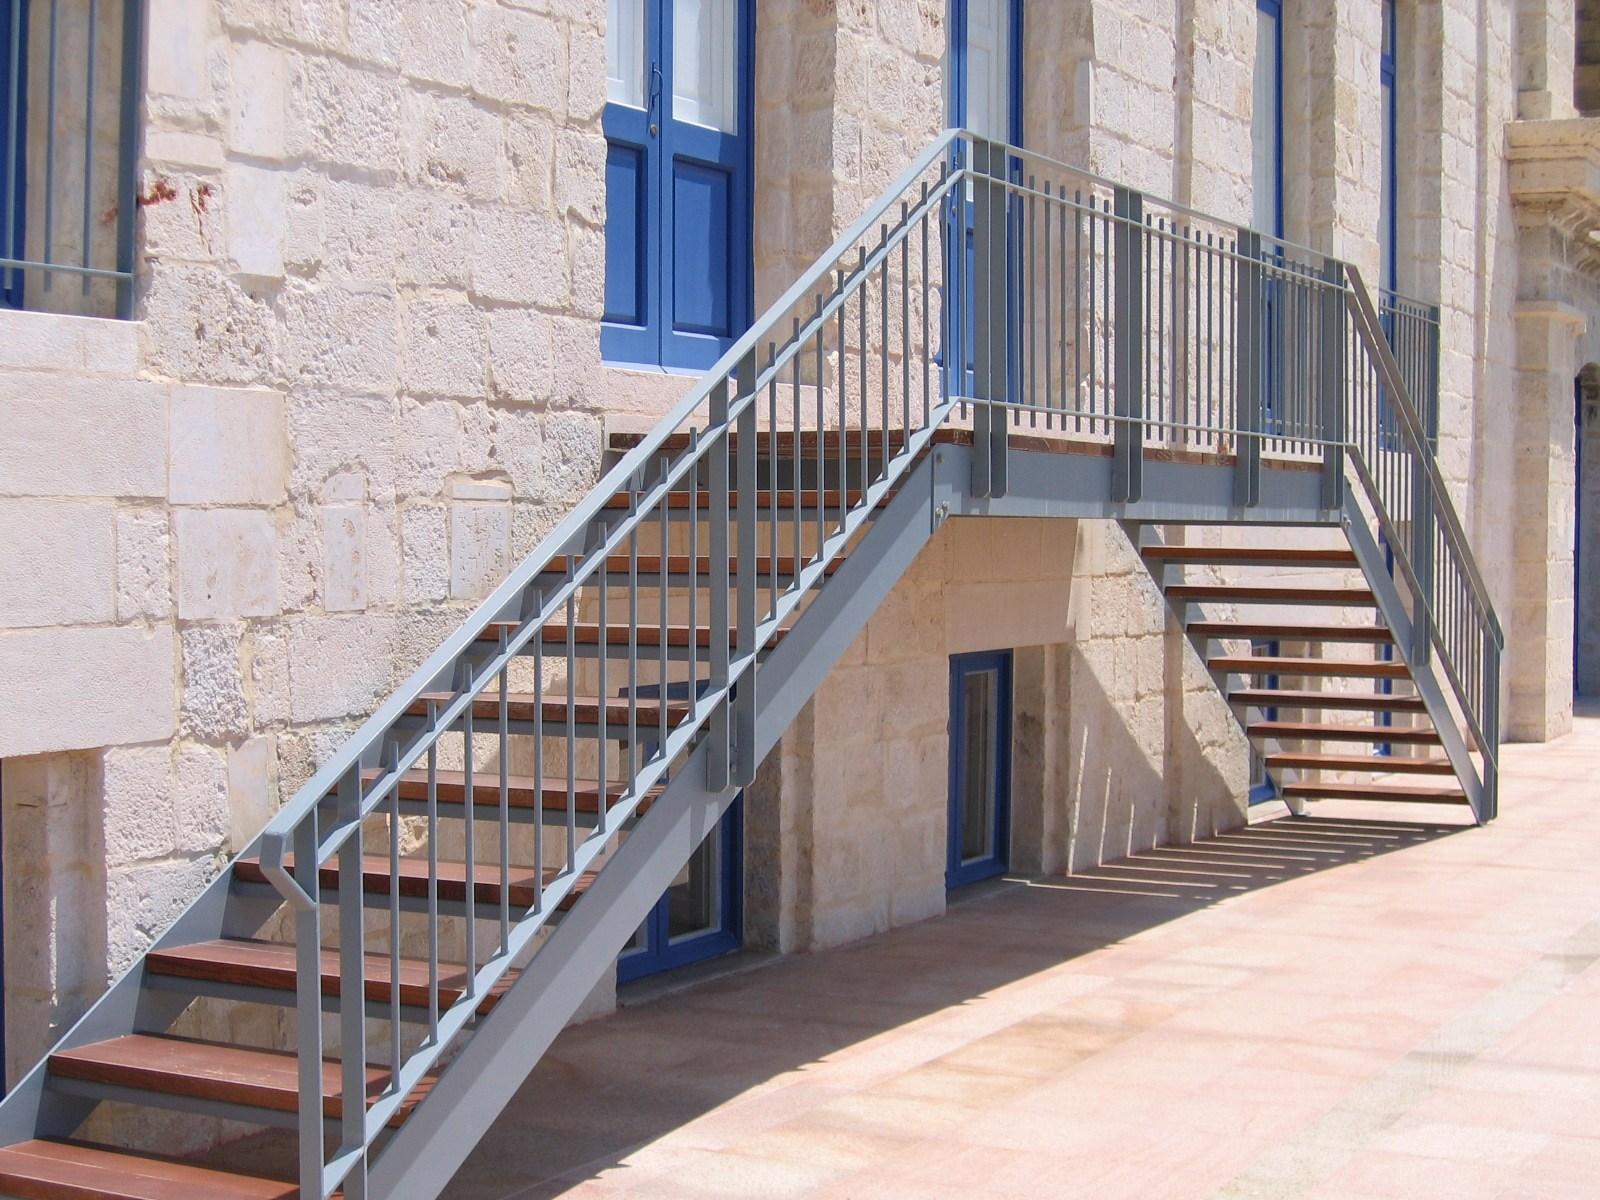 Staircases - The Treasury Building - Vittoriosa Waterfront 1